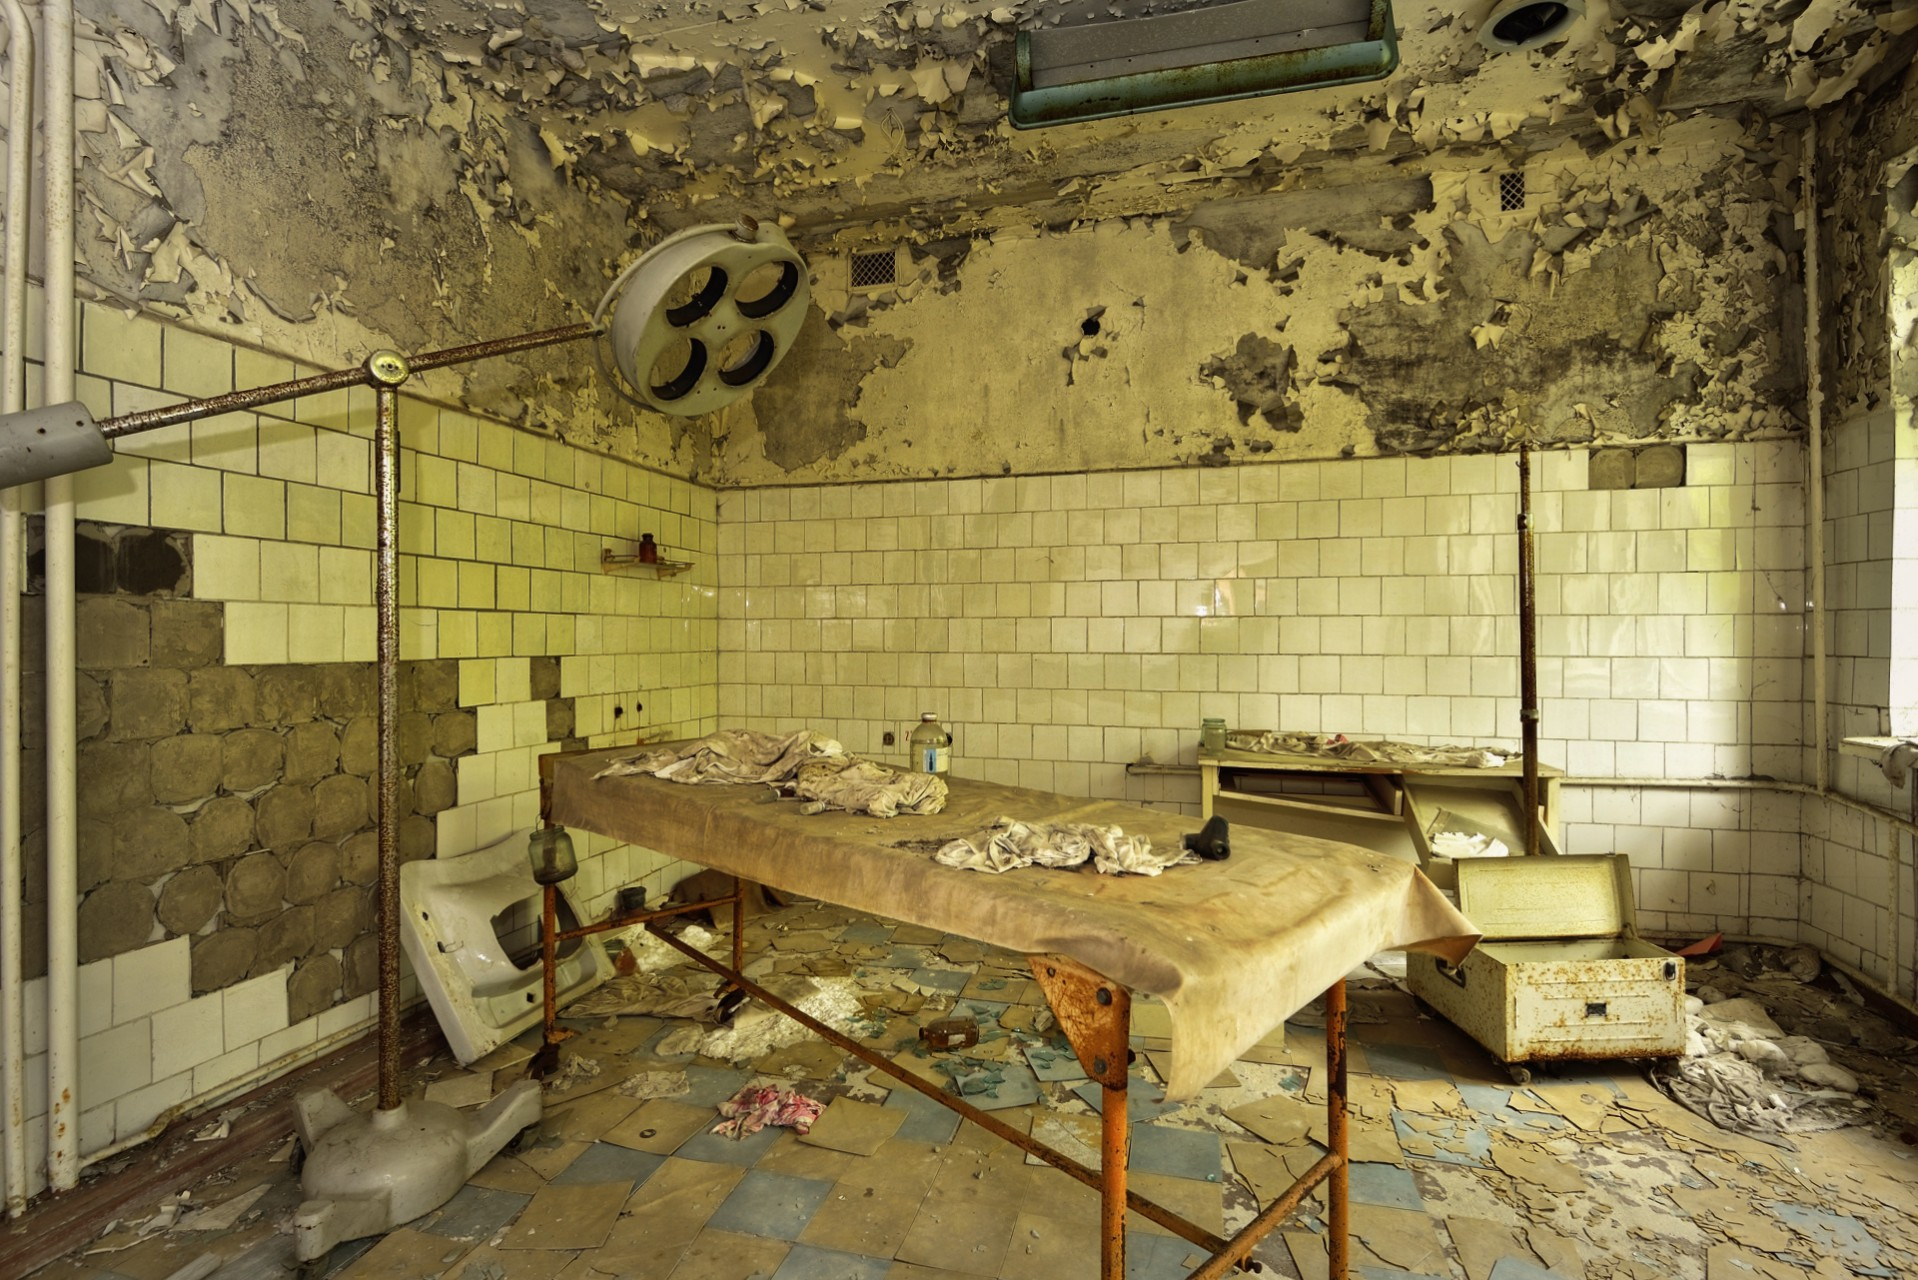 Pripyat Hospital / Surgery (Chernobyl, Ukraine)